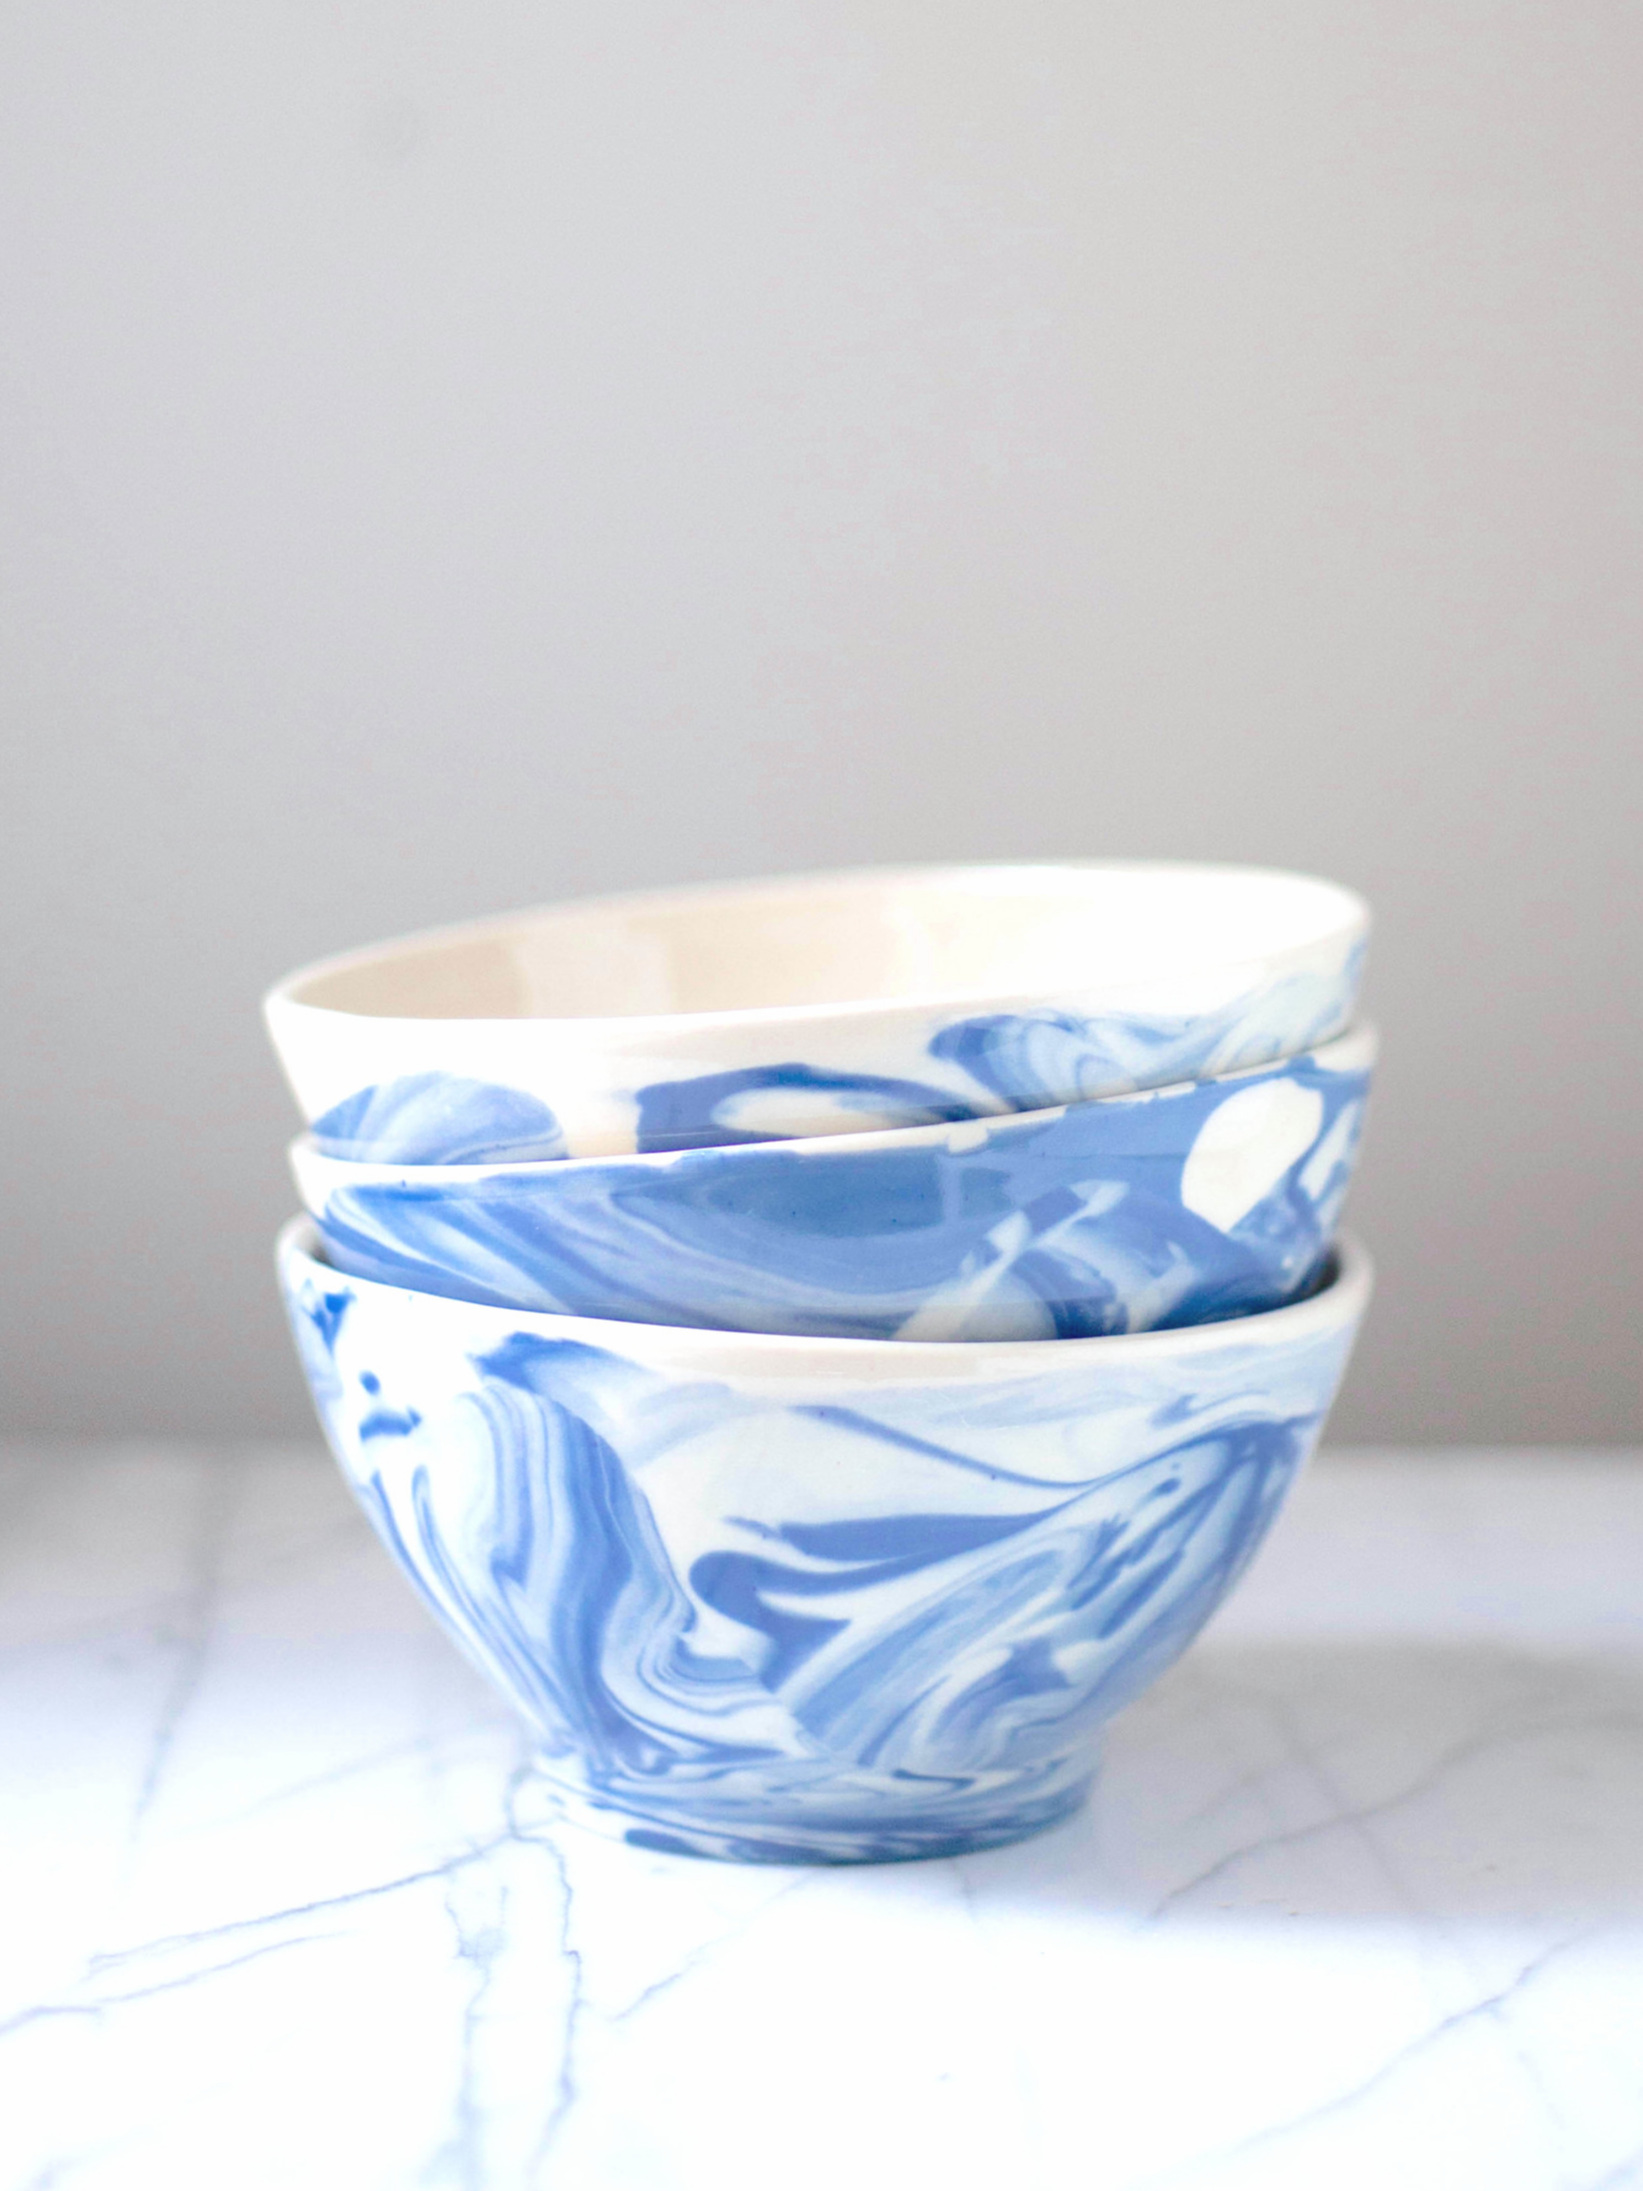 Cafe Au Lait Bowl Handmade in Maine - $38.00 each